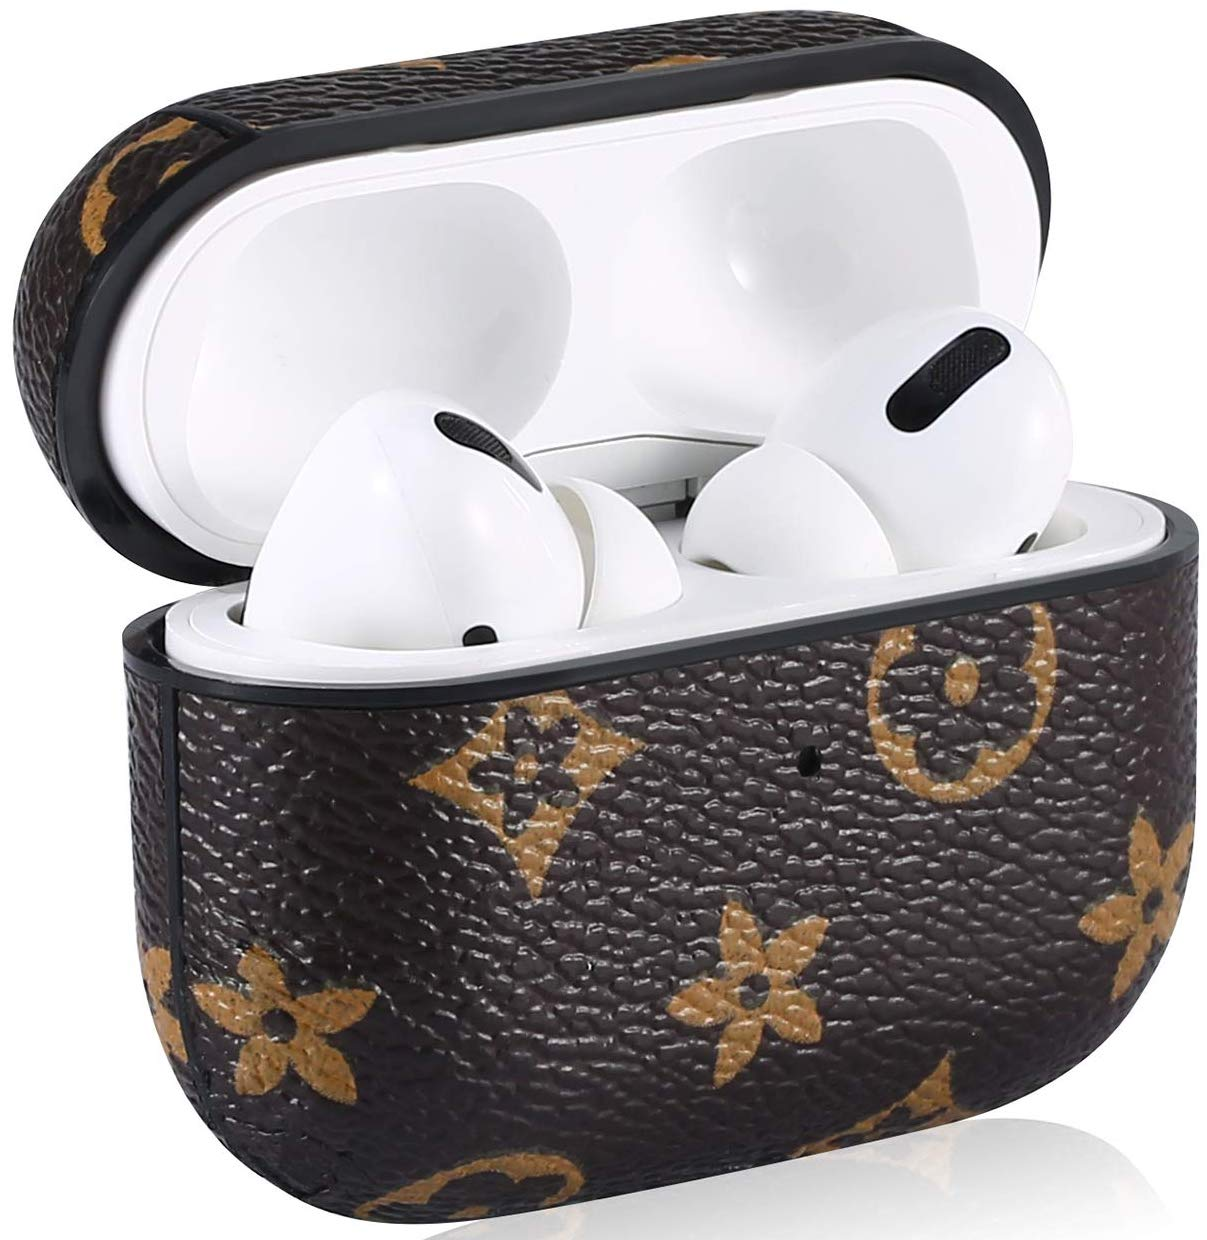 10 Best Airpods Pro Cases 2020 The Very Best Airpods Pro Covers